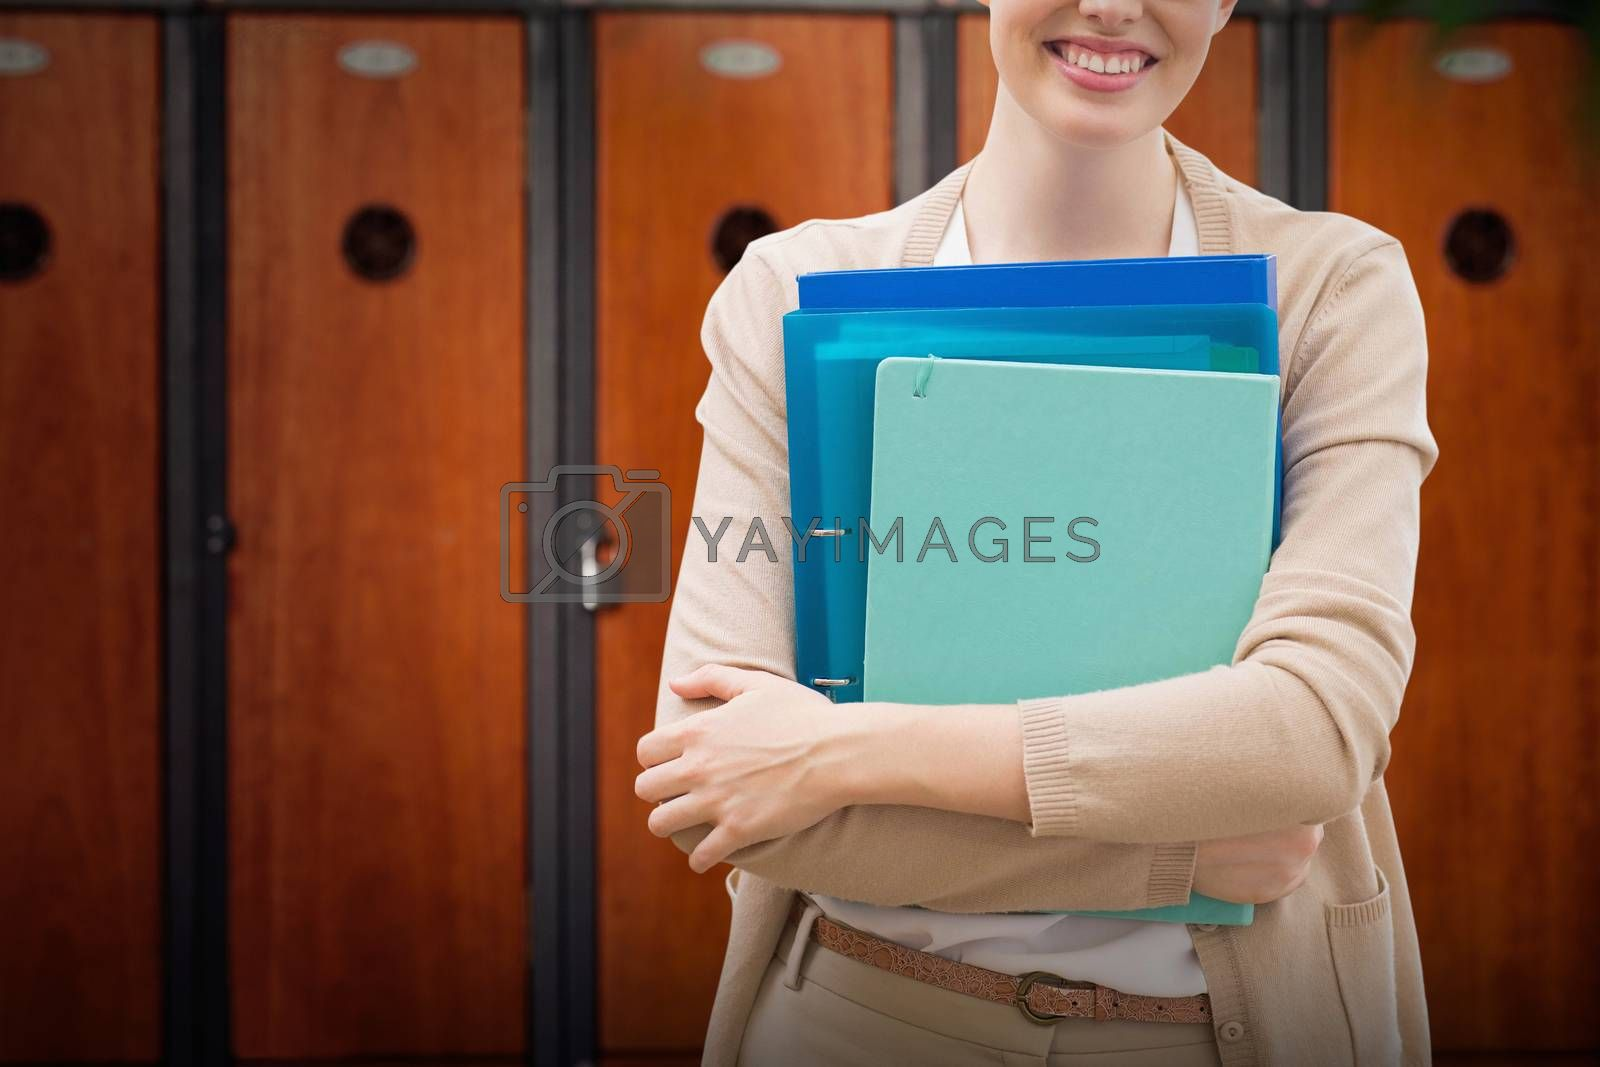 Composite image of teacher with files by Wavebreakmedia